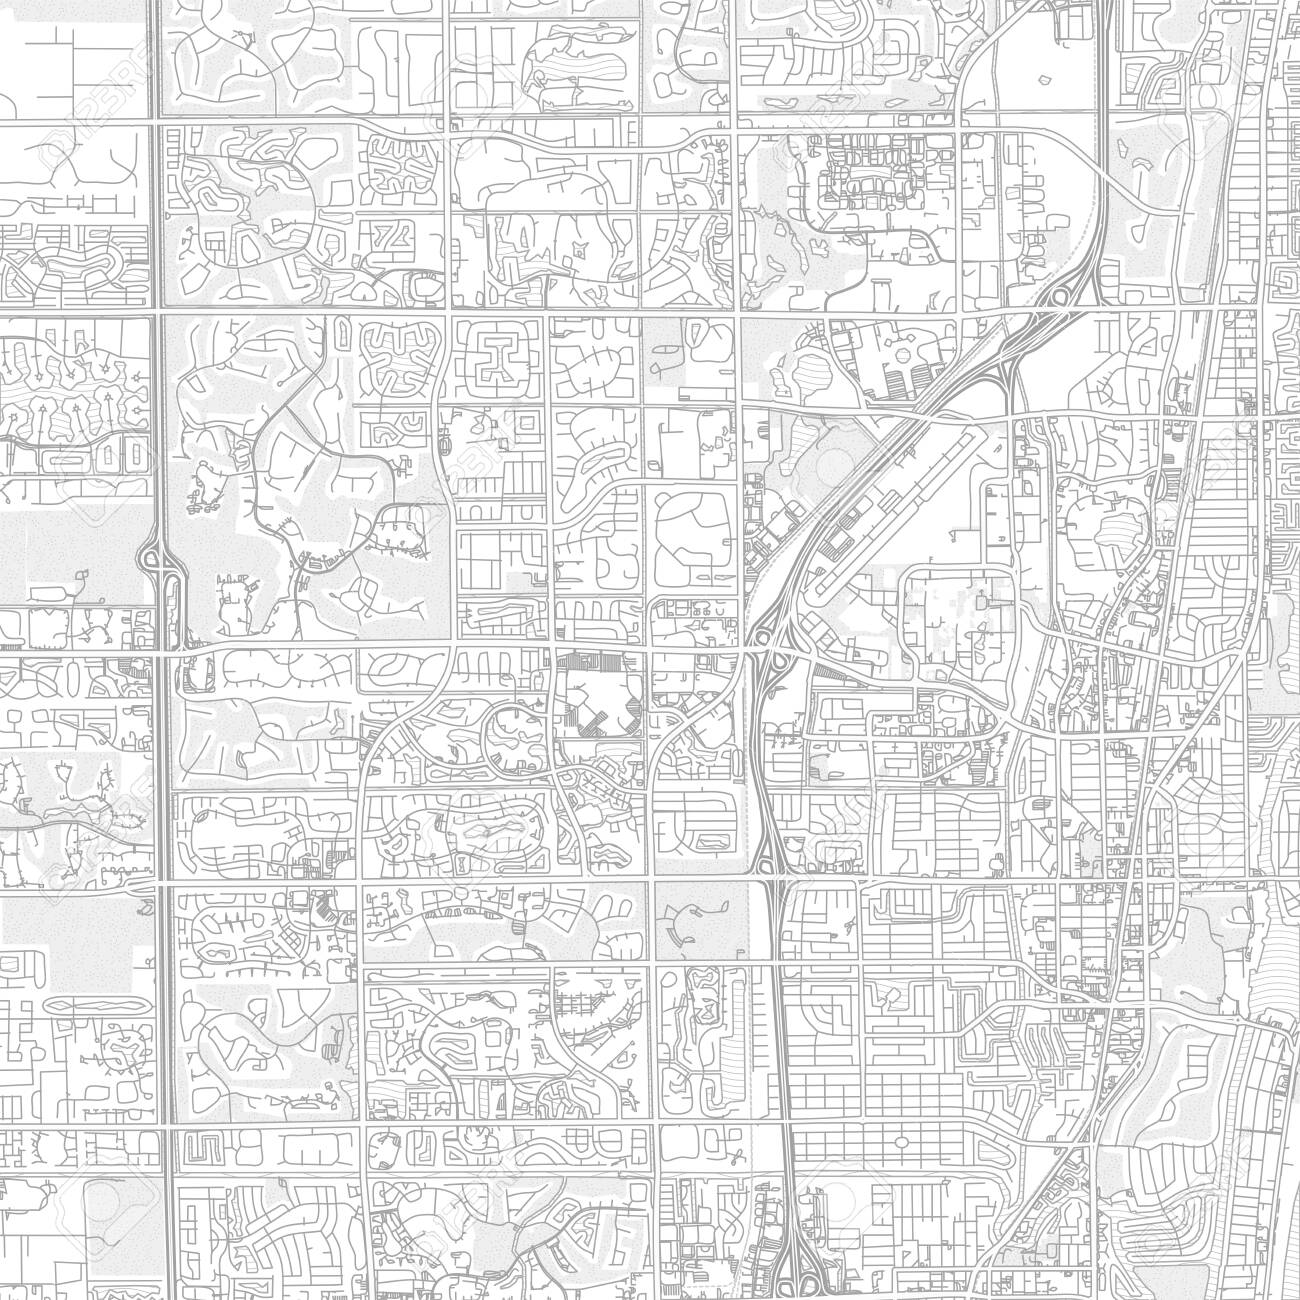 Boca Raton, Florida, USA, bright outlined vector map with bigger.. on st. augustine, pompano beach, west palm beach, naples florida map, daytona beach, biscayne park florida map, deerfield beach, fort myers, deerfield beach fl map, key west, delray beach, brandon florida map, broward county florida map, lynn university, coral gables florida map, bradenton florida map, florida atlantic university, hollywood florida map, cocoa beach florida map, palm beach florida map, key west florida map, palm beach county, ft myers florida map, winter springs florida map, lakeland florida map, boynton beach, south florida map, broward county, miami florida map, pompano beach florida map, fort lauderdale, tallahassee florida map, palm beach, miami beach, cape coral florida map, daytona beach florida map,